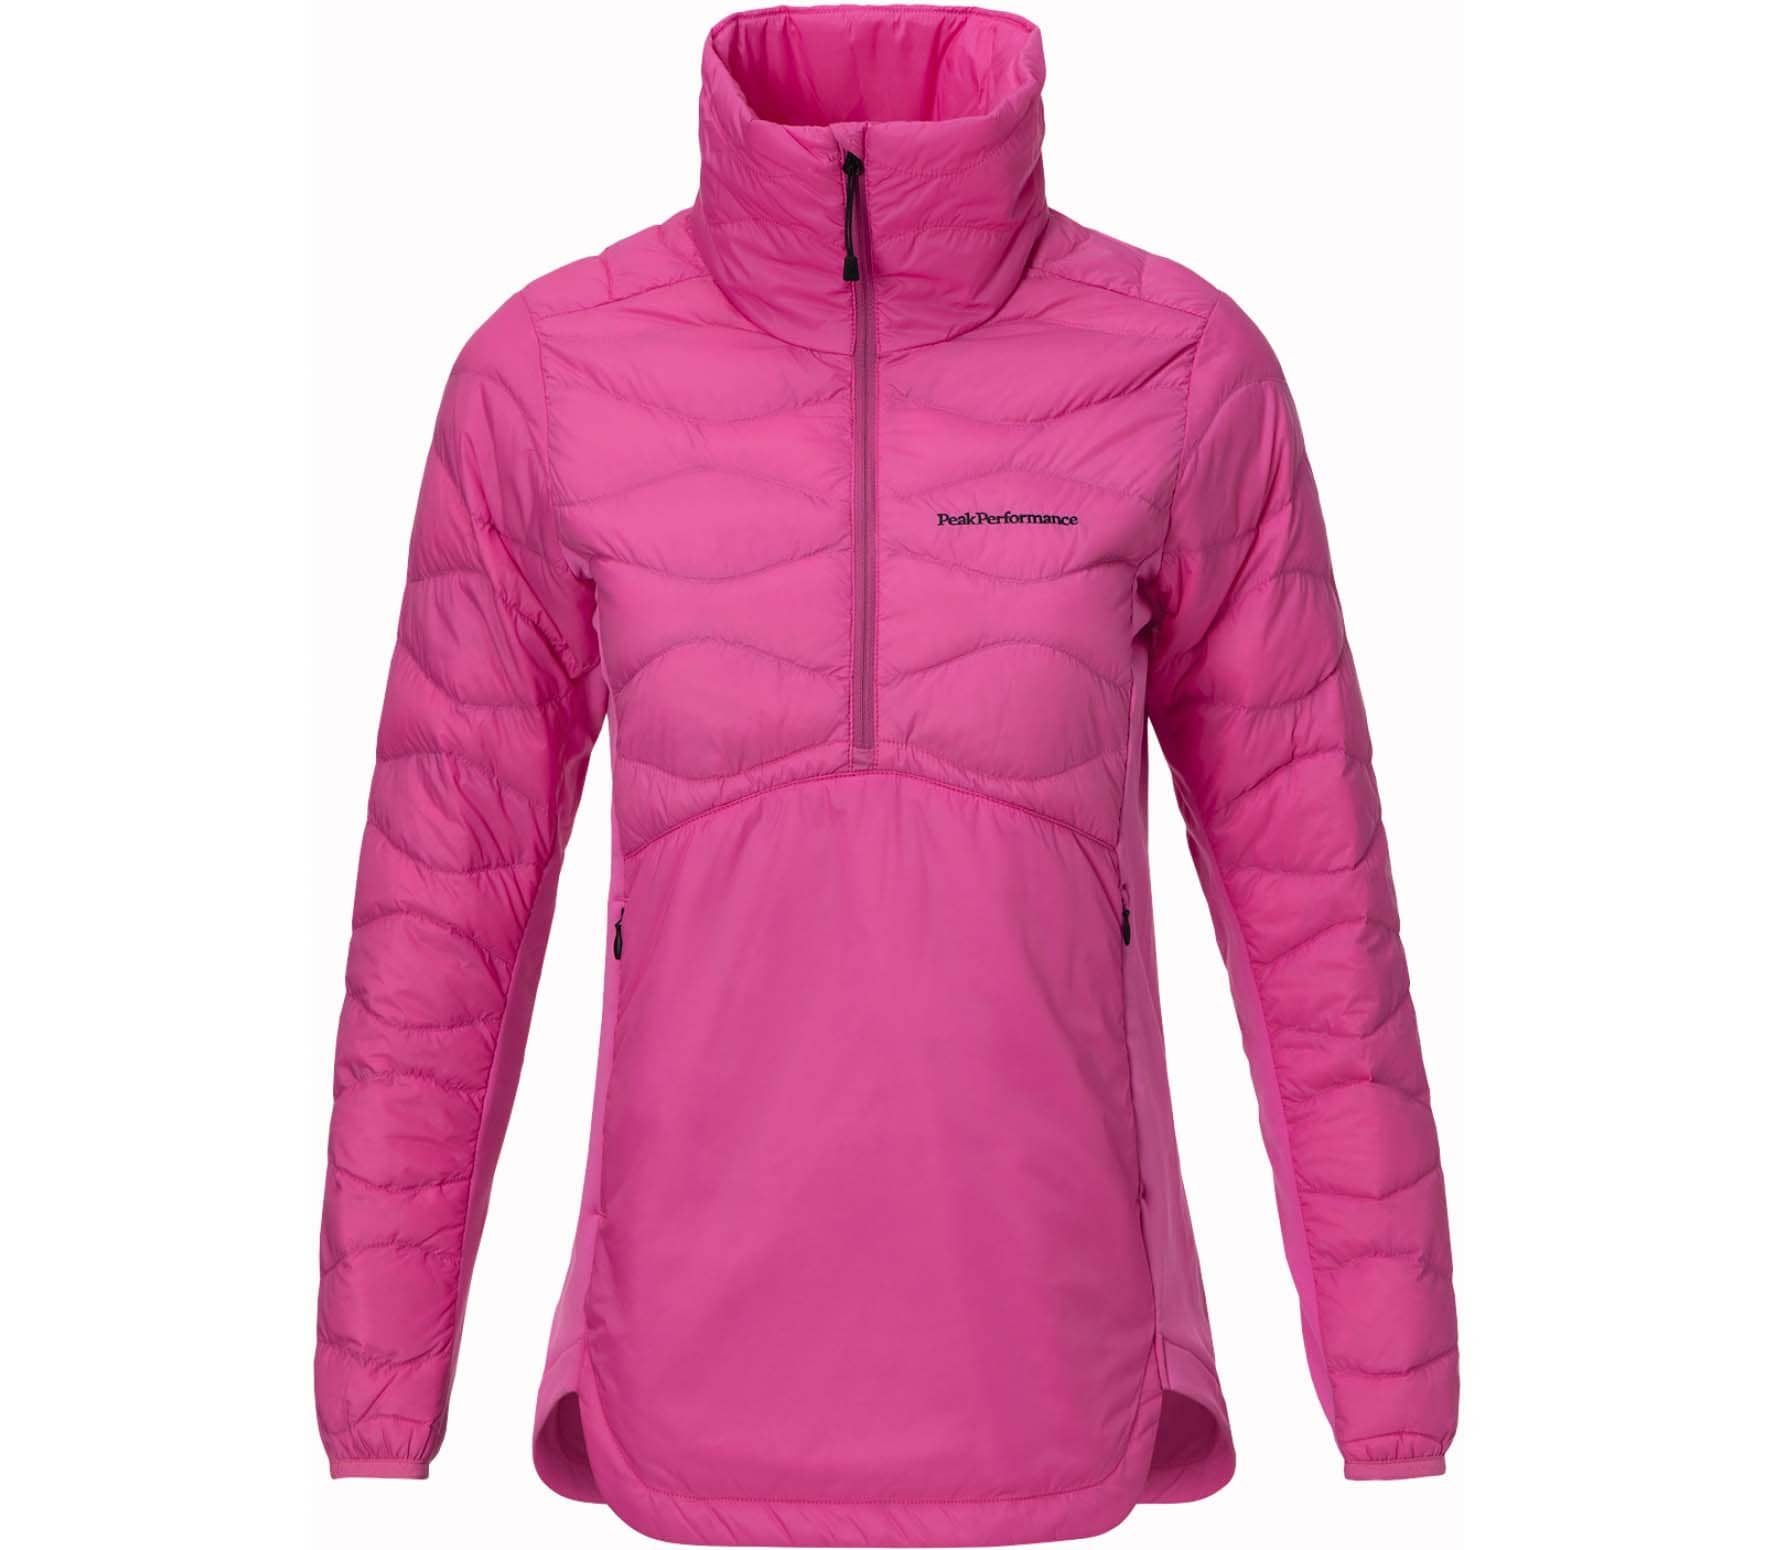 Peak Performance - Helium Hybrid women's hybrid jacket (pink)